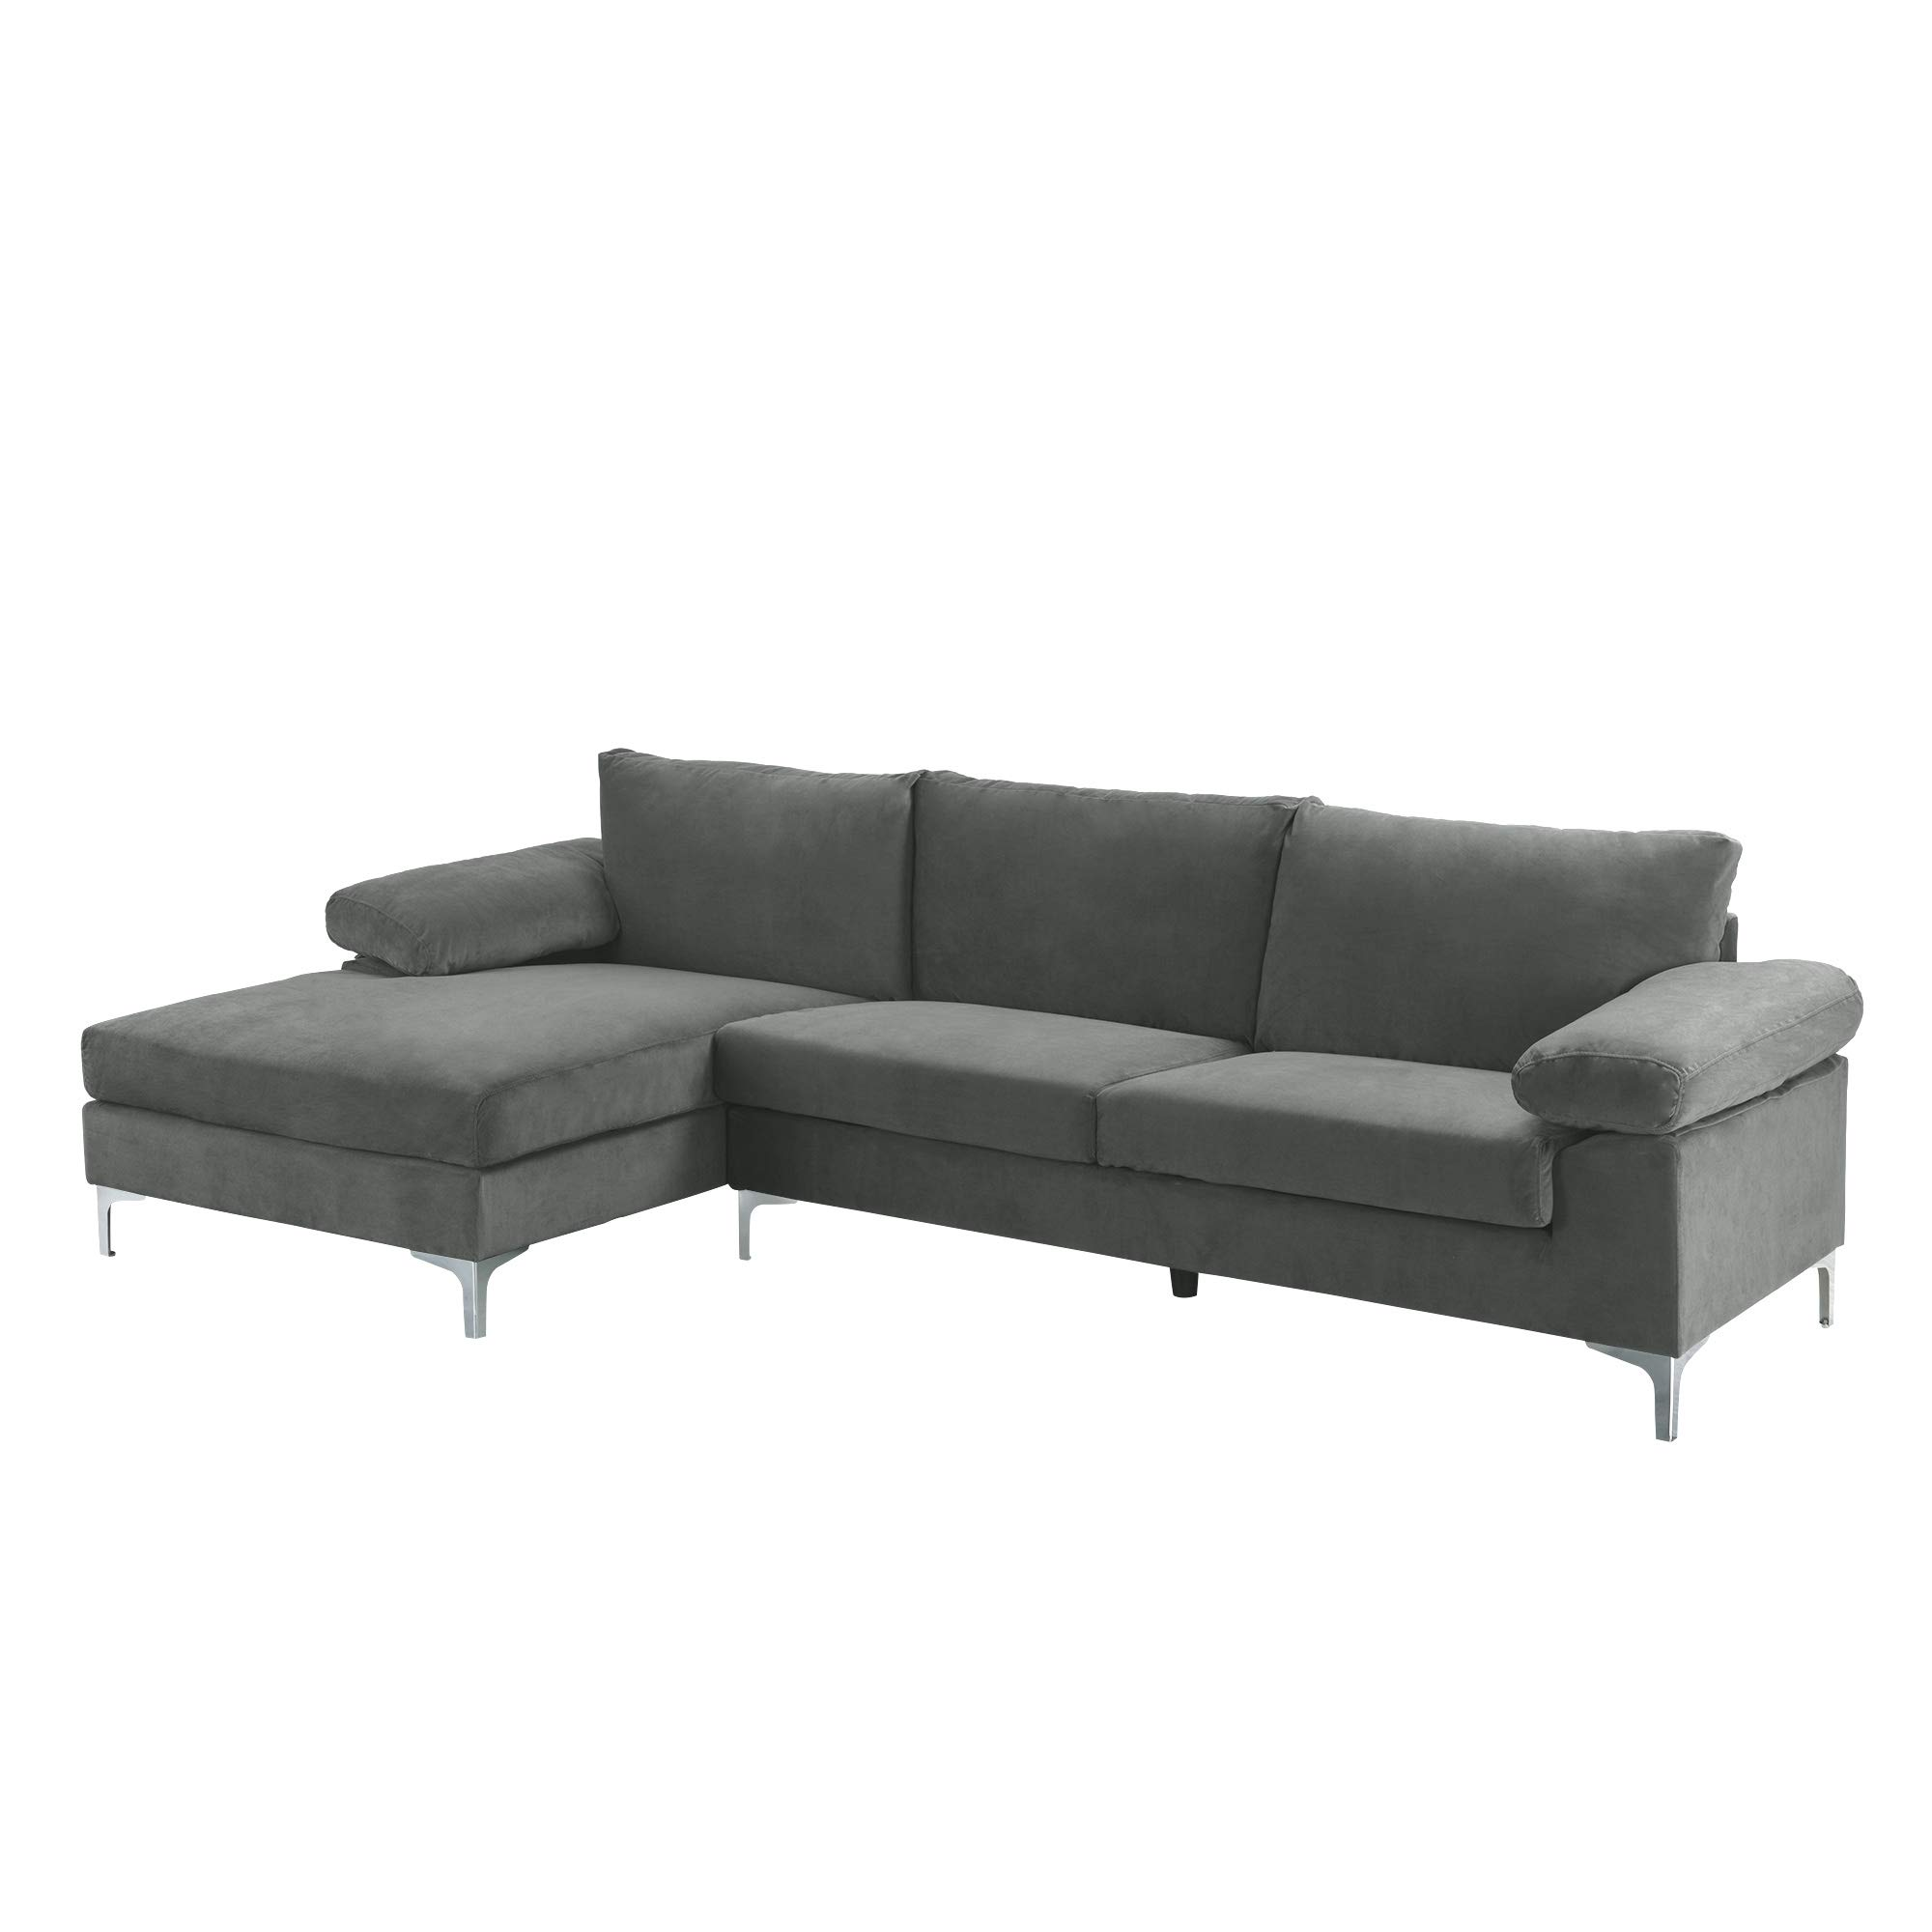 Casa Andrea Milano llc Modern Large Velvet Fabric Sectional Sofa, L-Shape Couch with Extra Wide Chaise Lounge, Grey